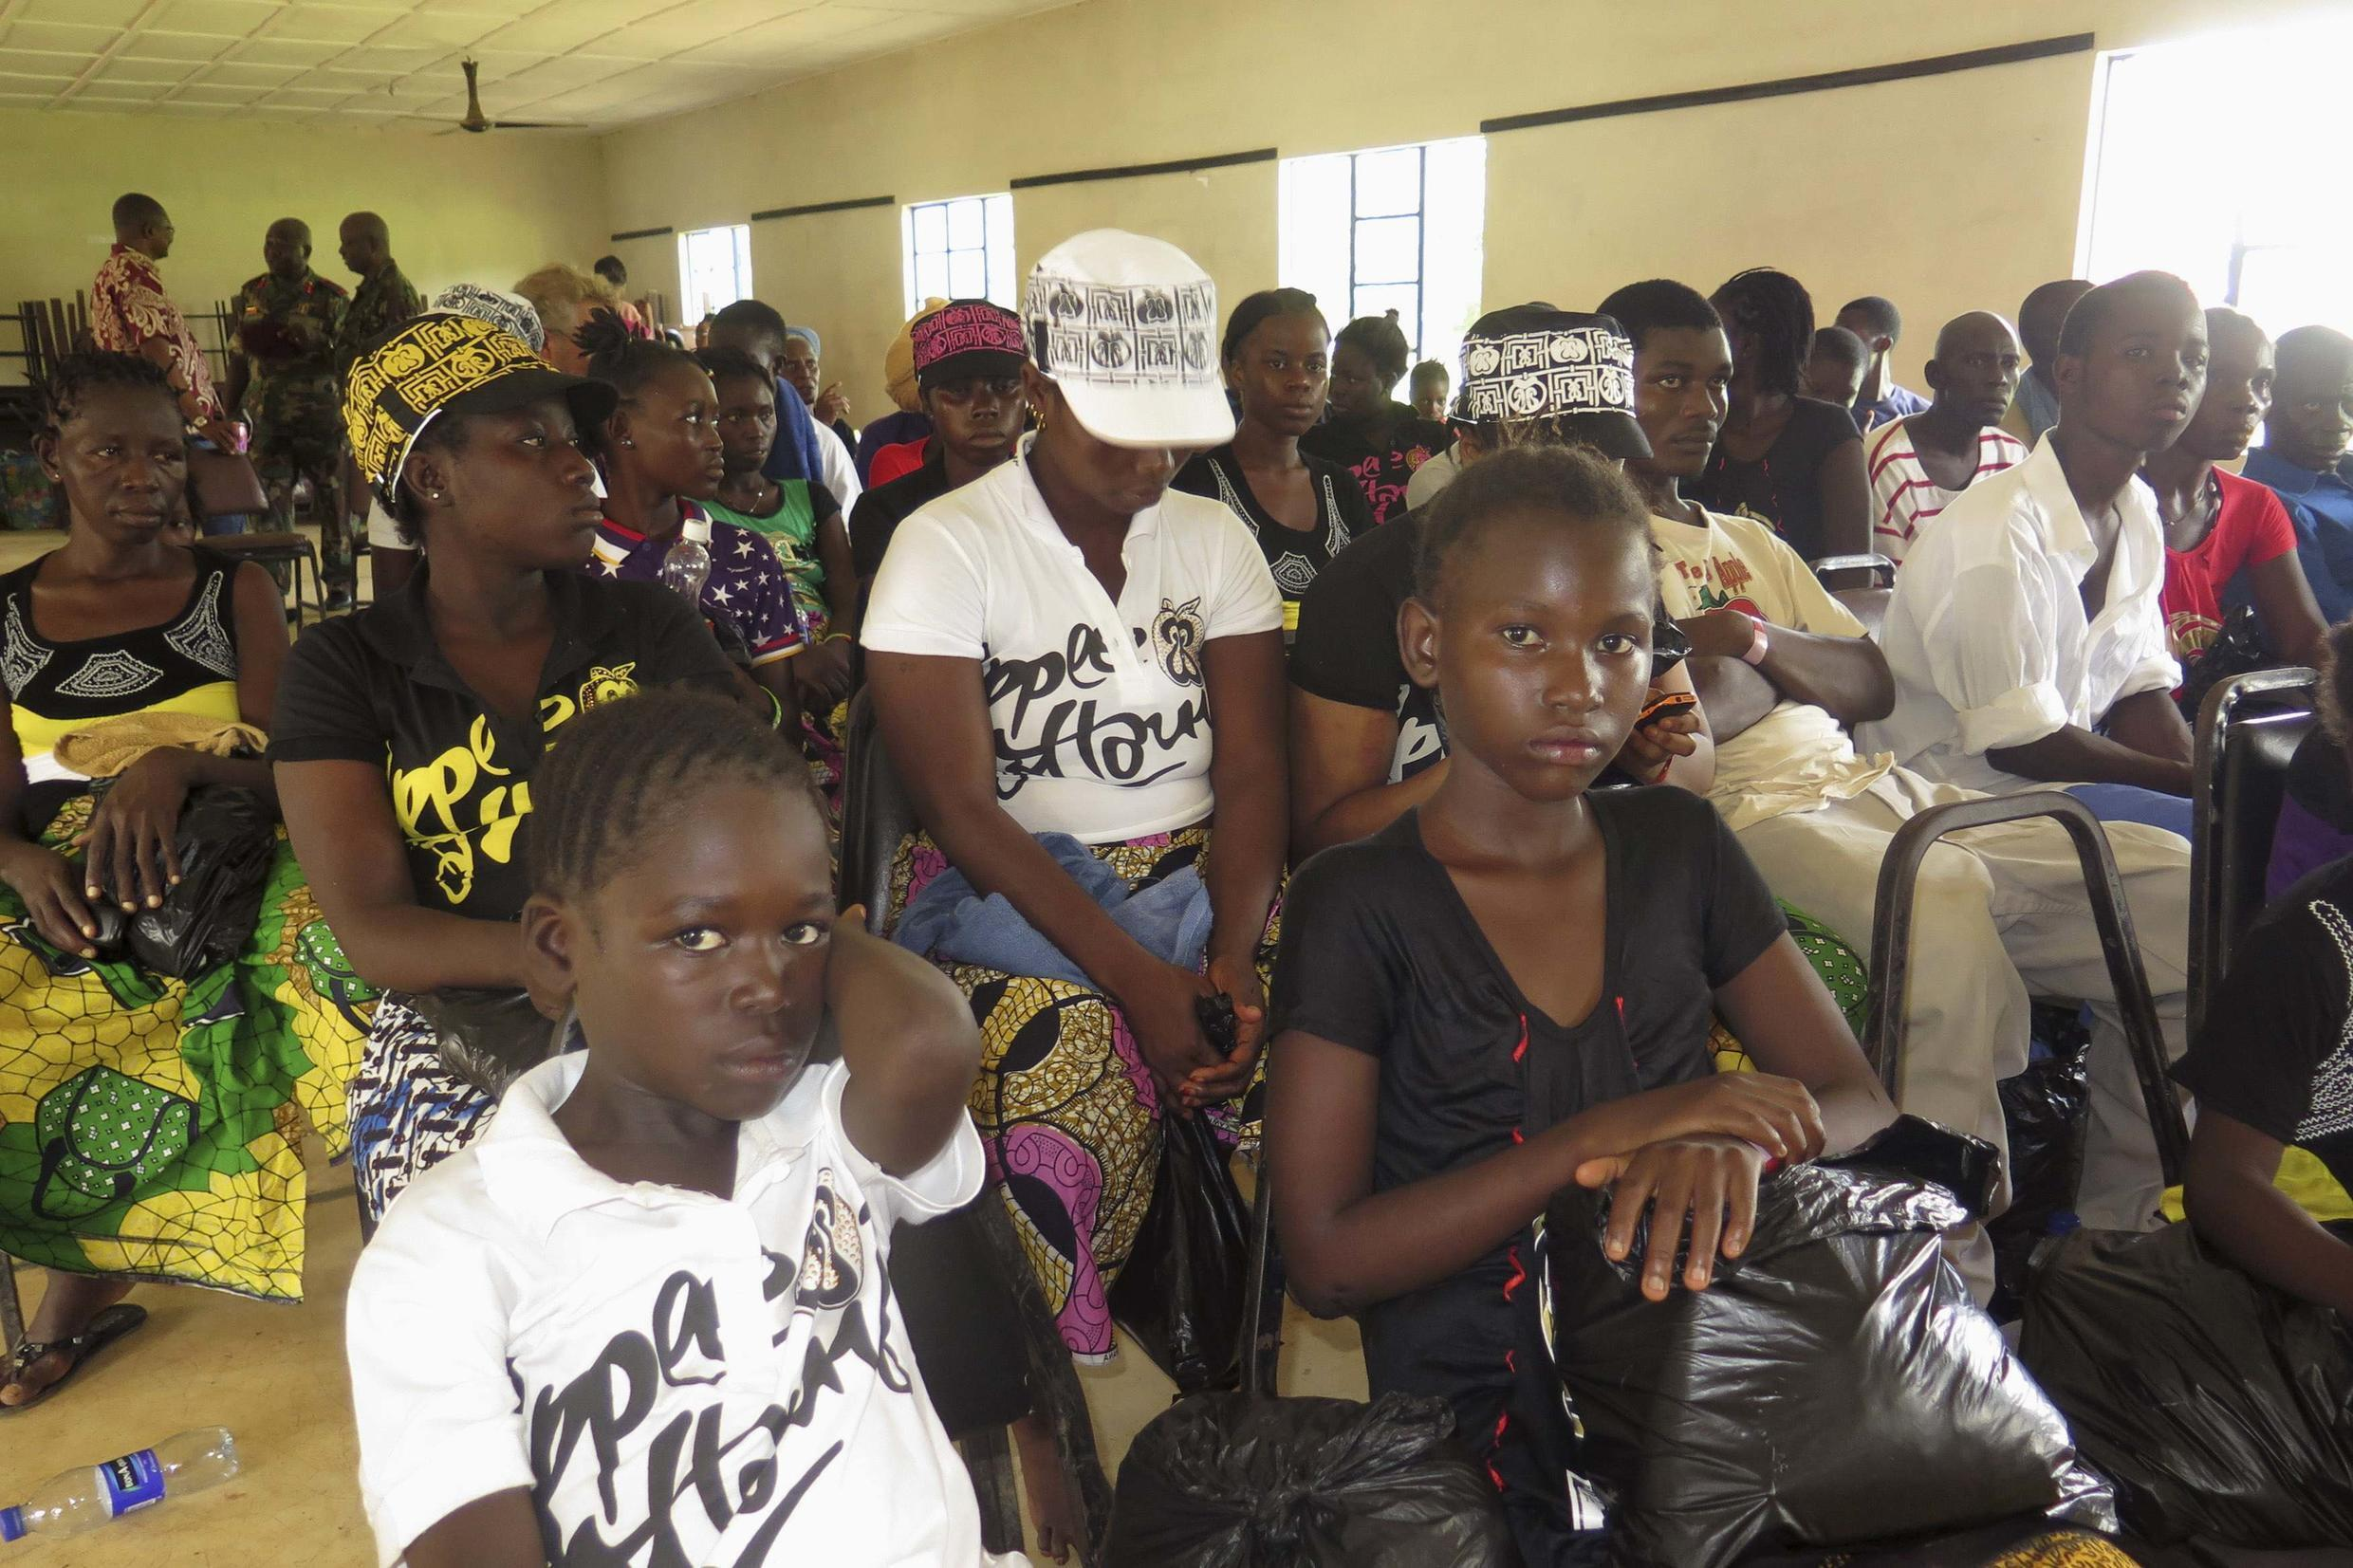 Survivors of the Ebola outbreak attend a discharging ceremony at a health clinic in Freetown, 6 October 2014.